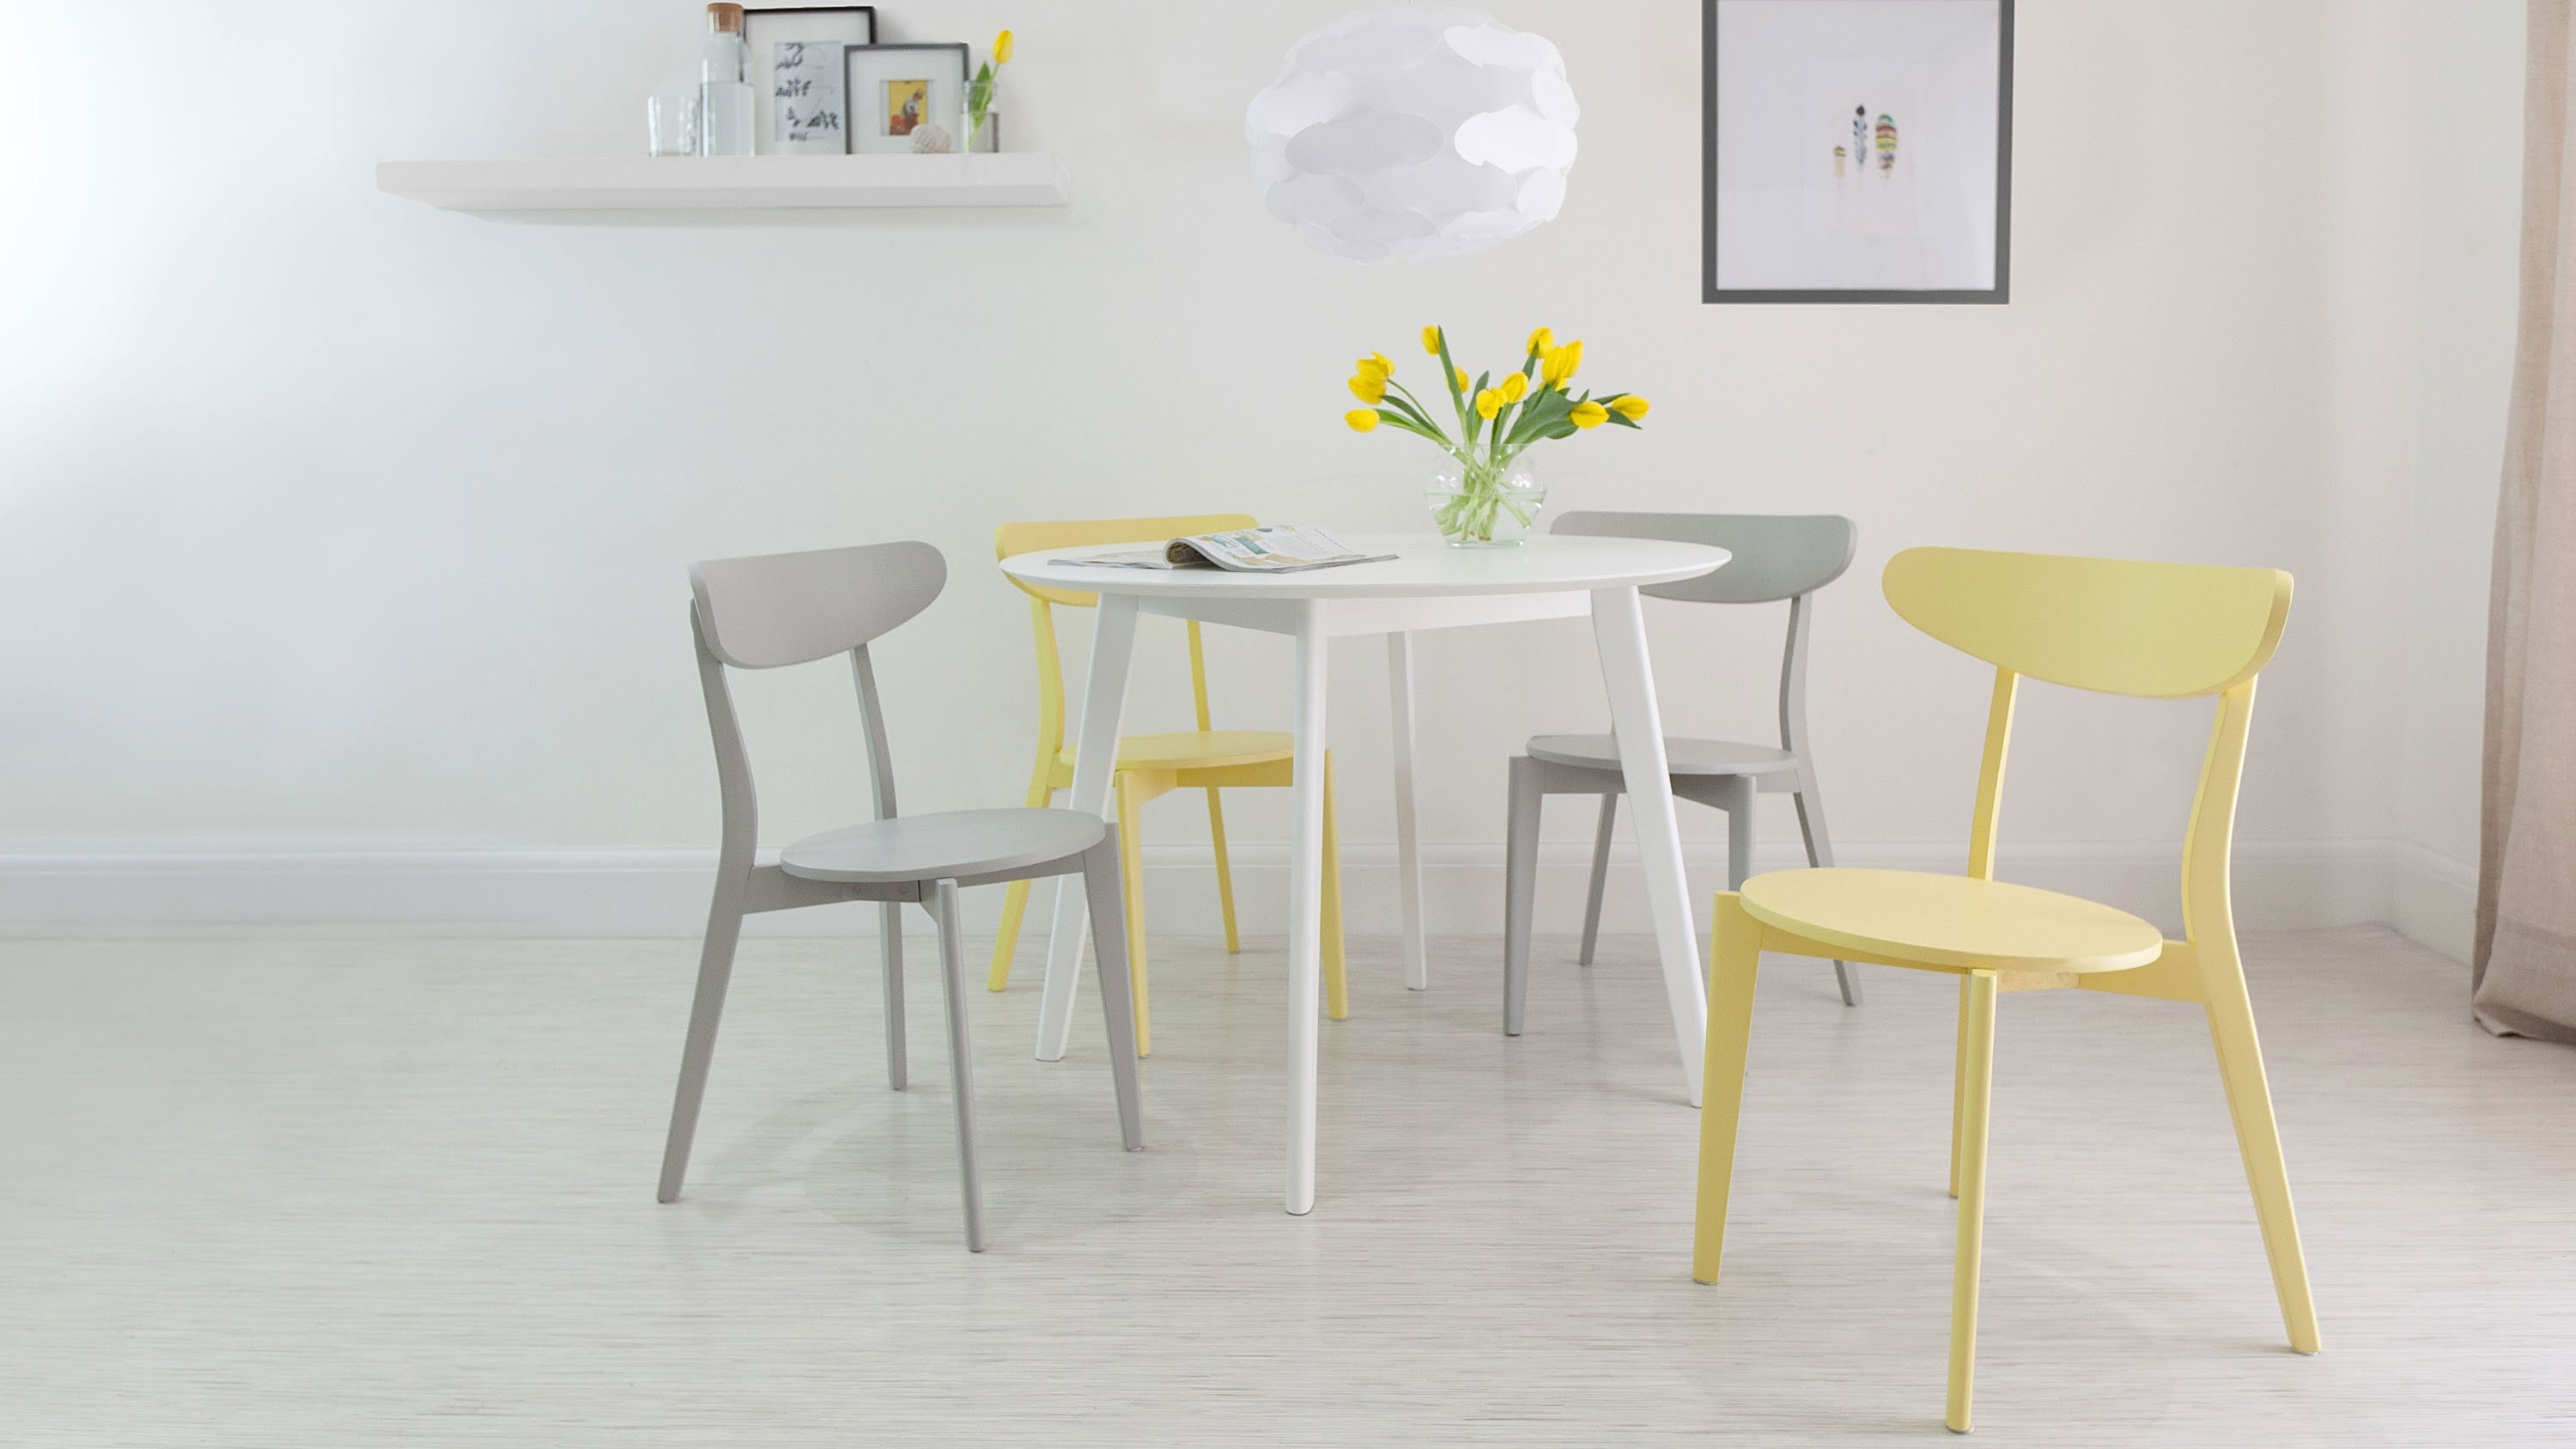 White Circular Dining Tables Intended For Well Known Espresso Wicker Dining Table With Glass Top And Storage Also (View 22 of 25)